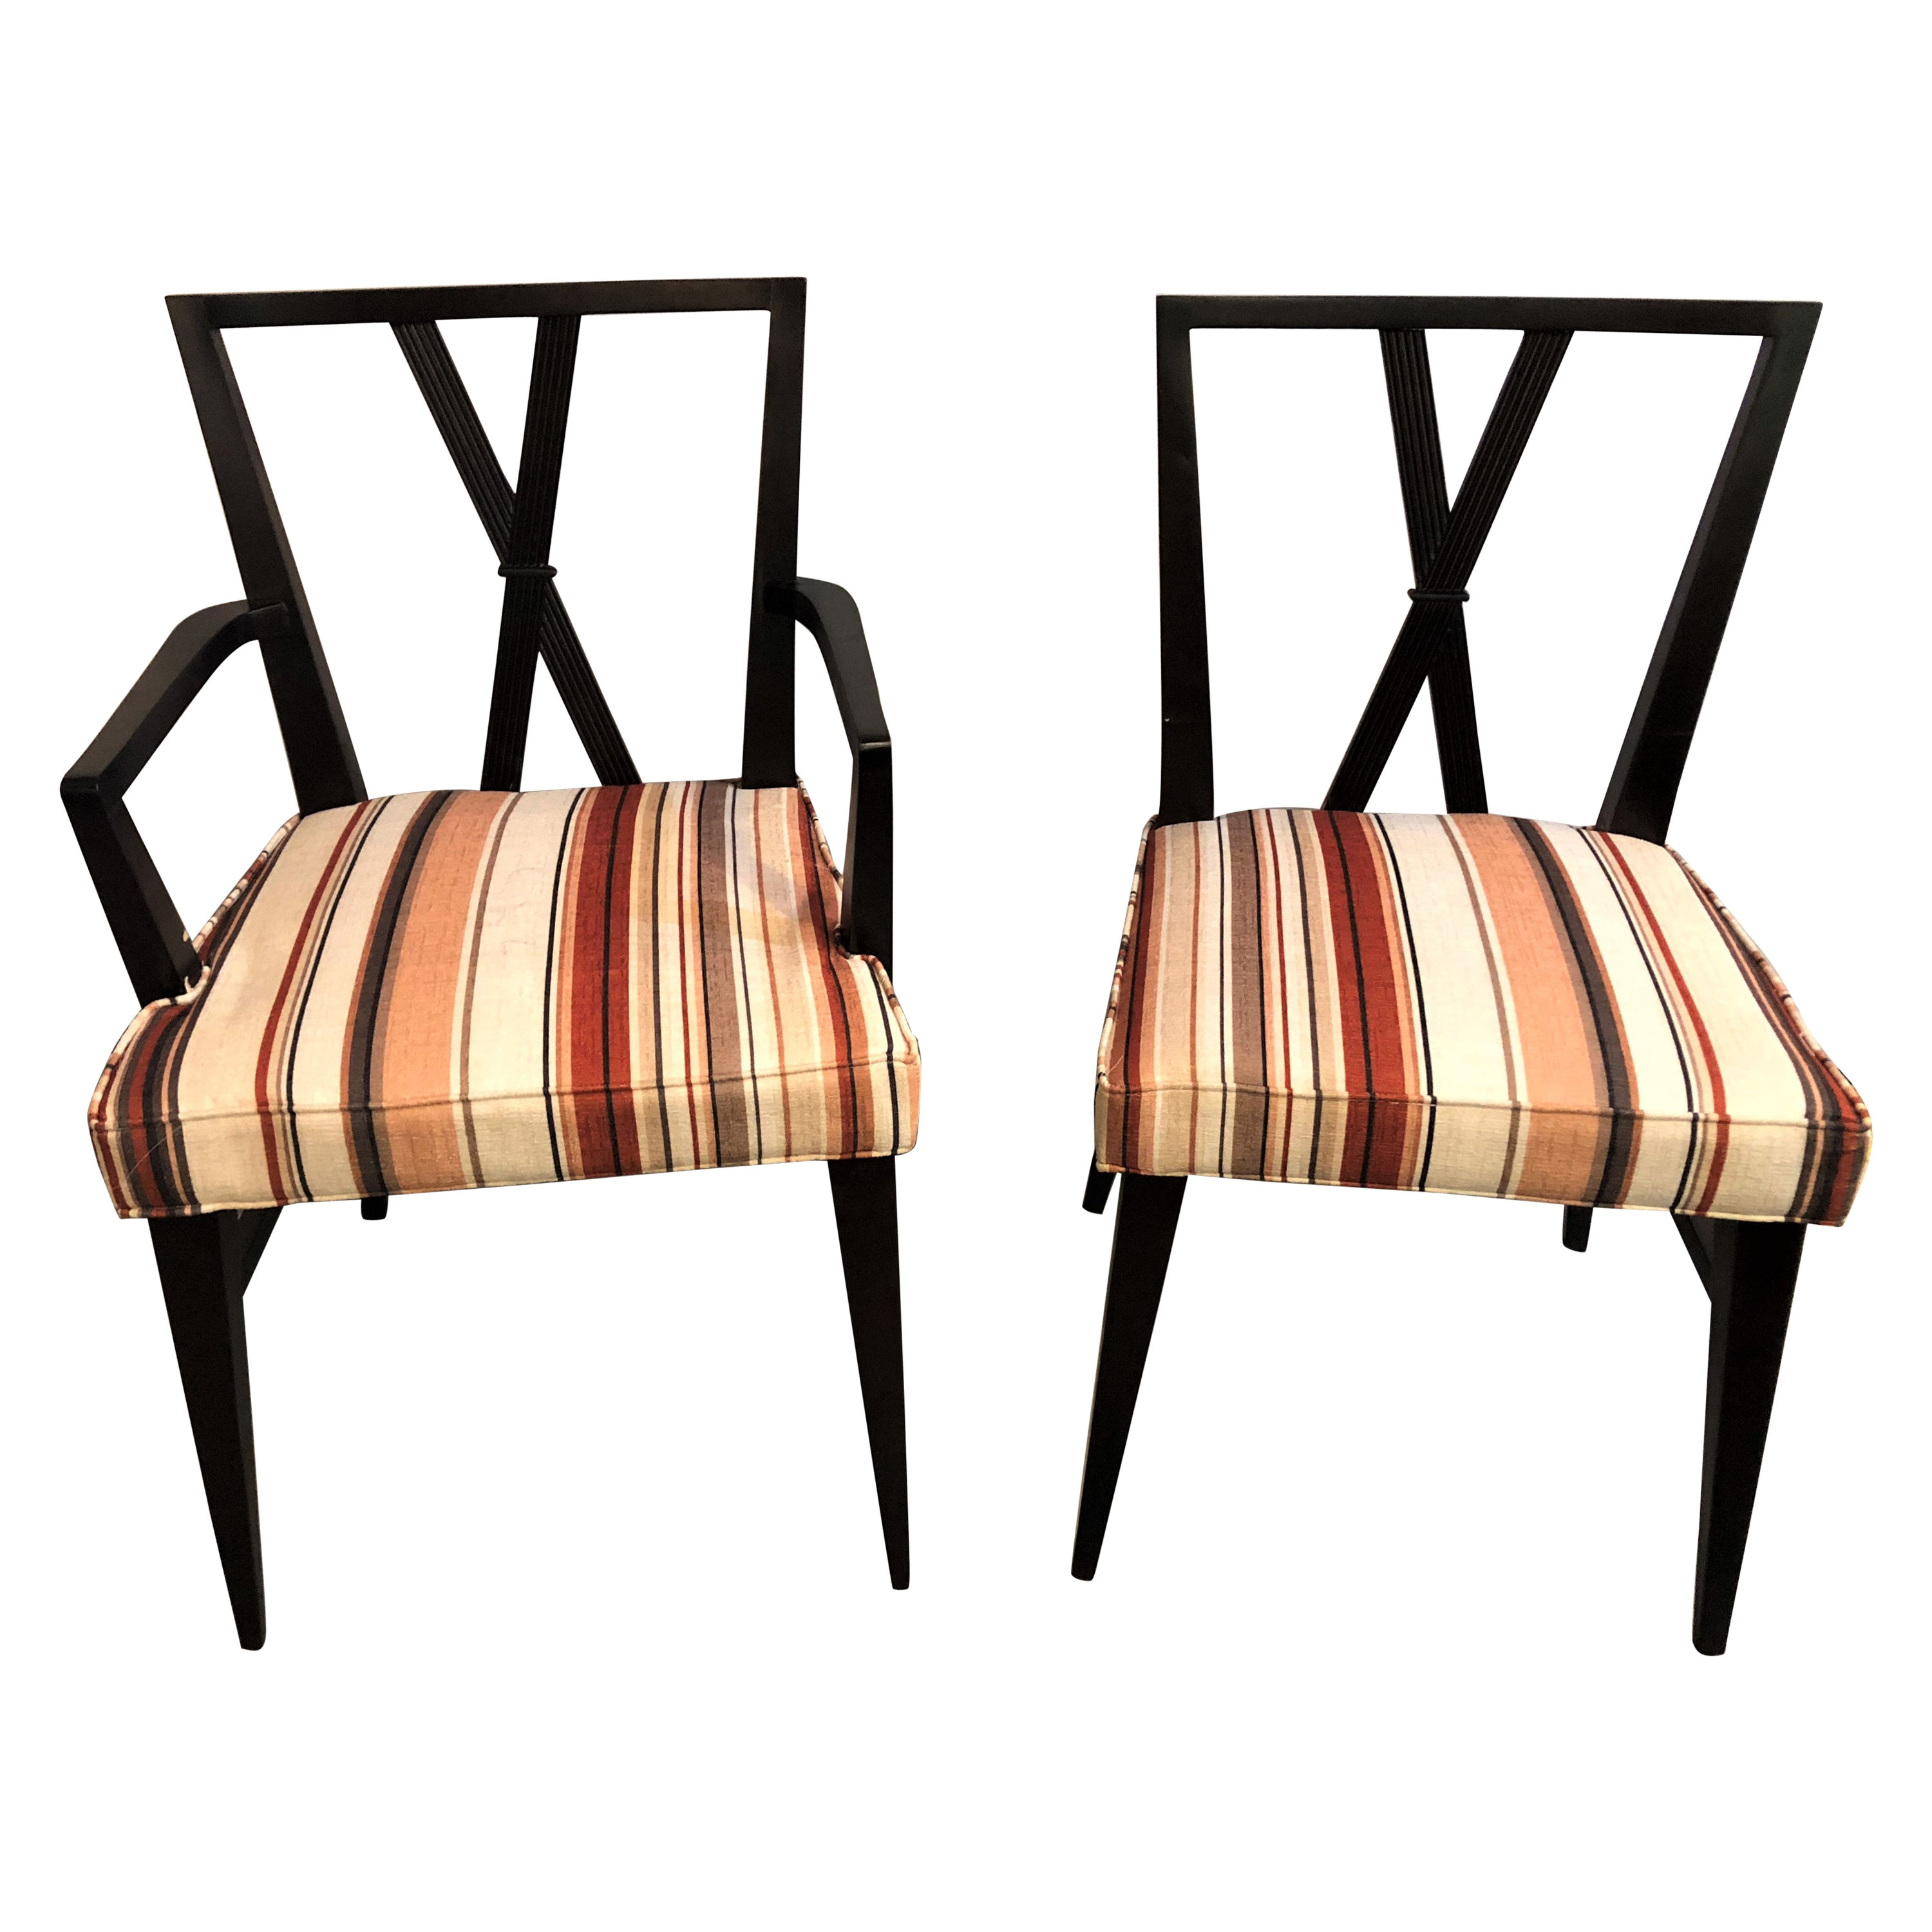 Set of Ten Tommi Parzinger Attributed Dining Room Chairs